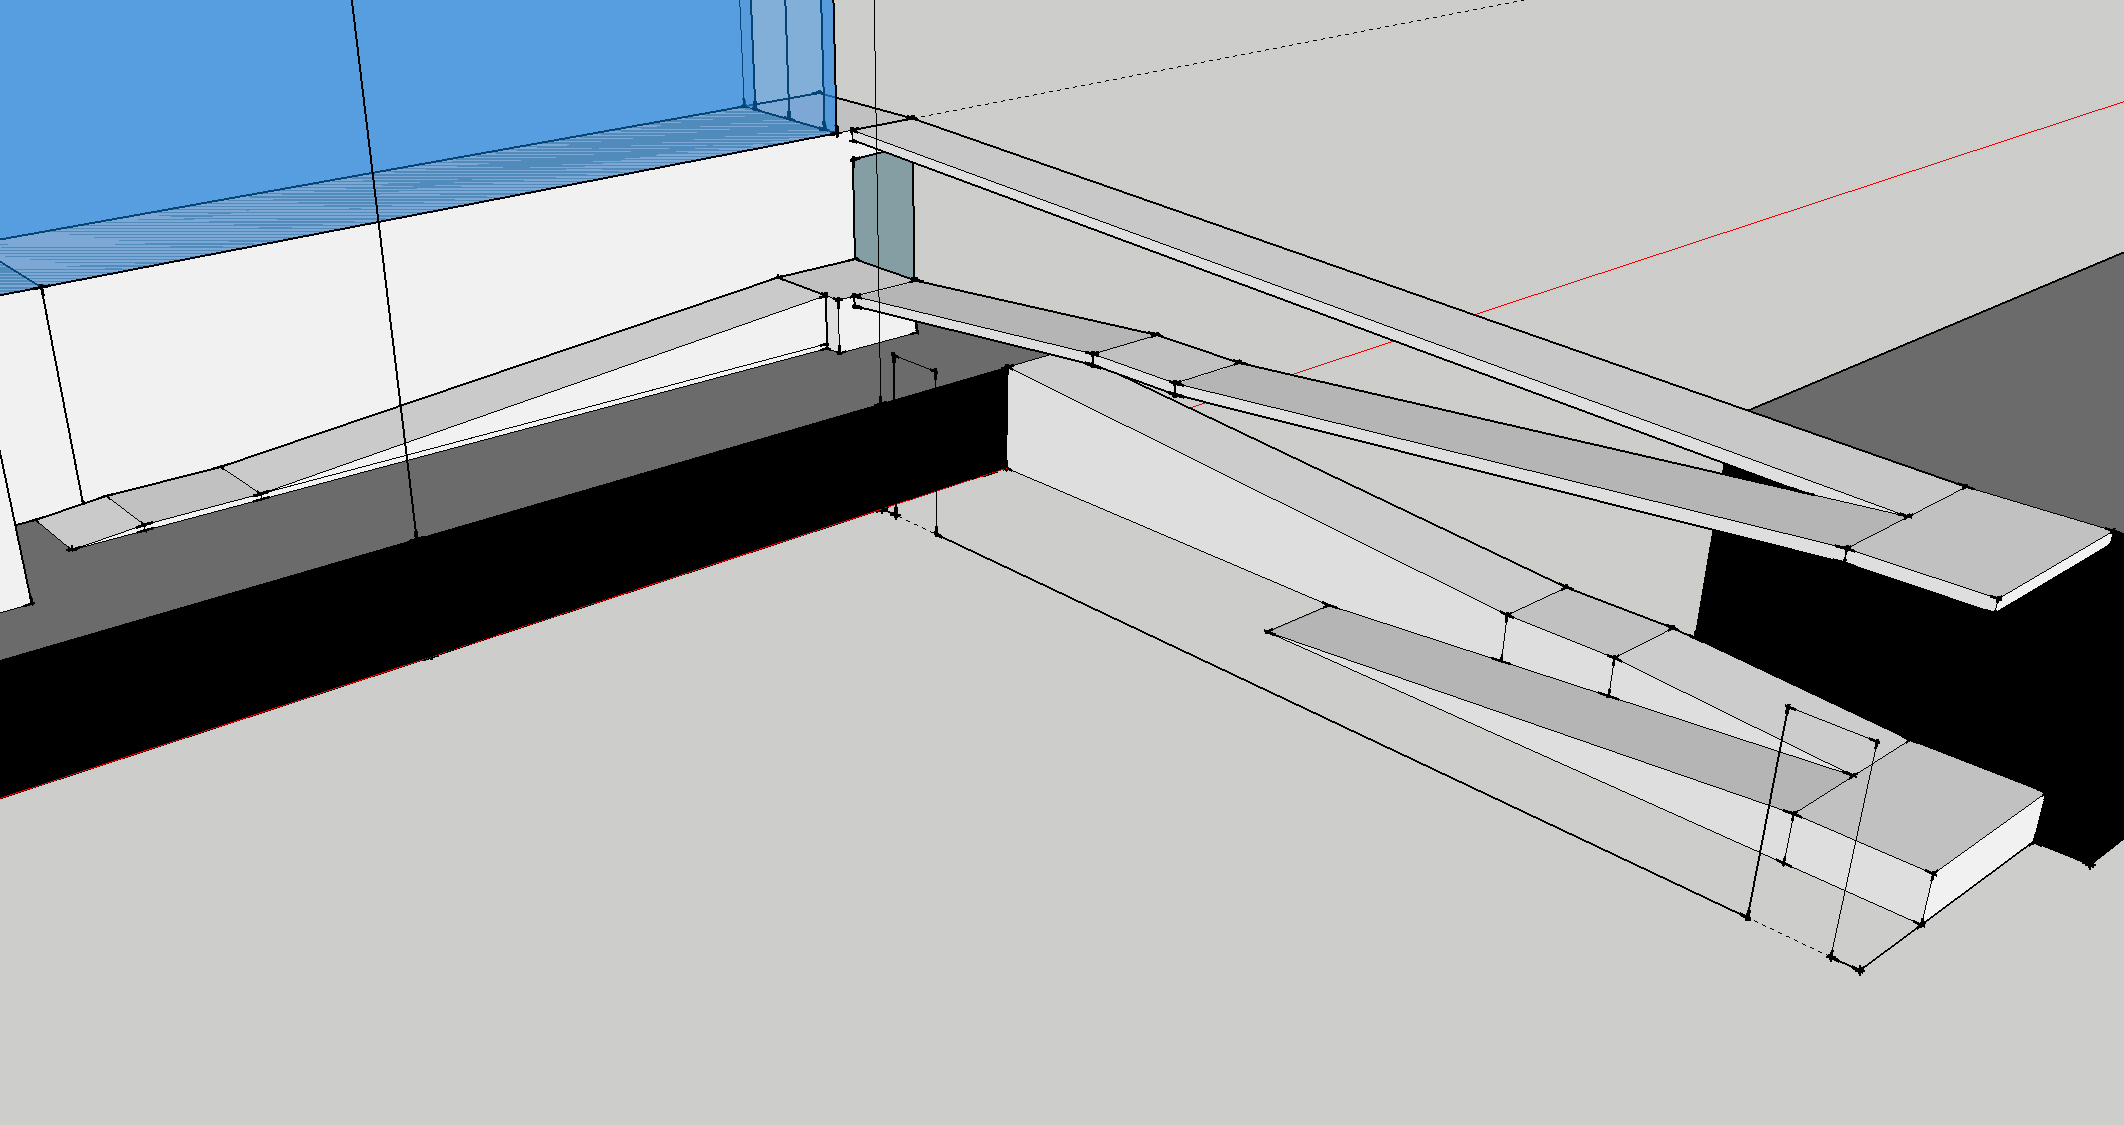 The ADA-compliant ramp system that I designed to navigate the grade changes between the different CLOTH properties.